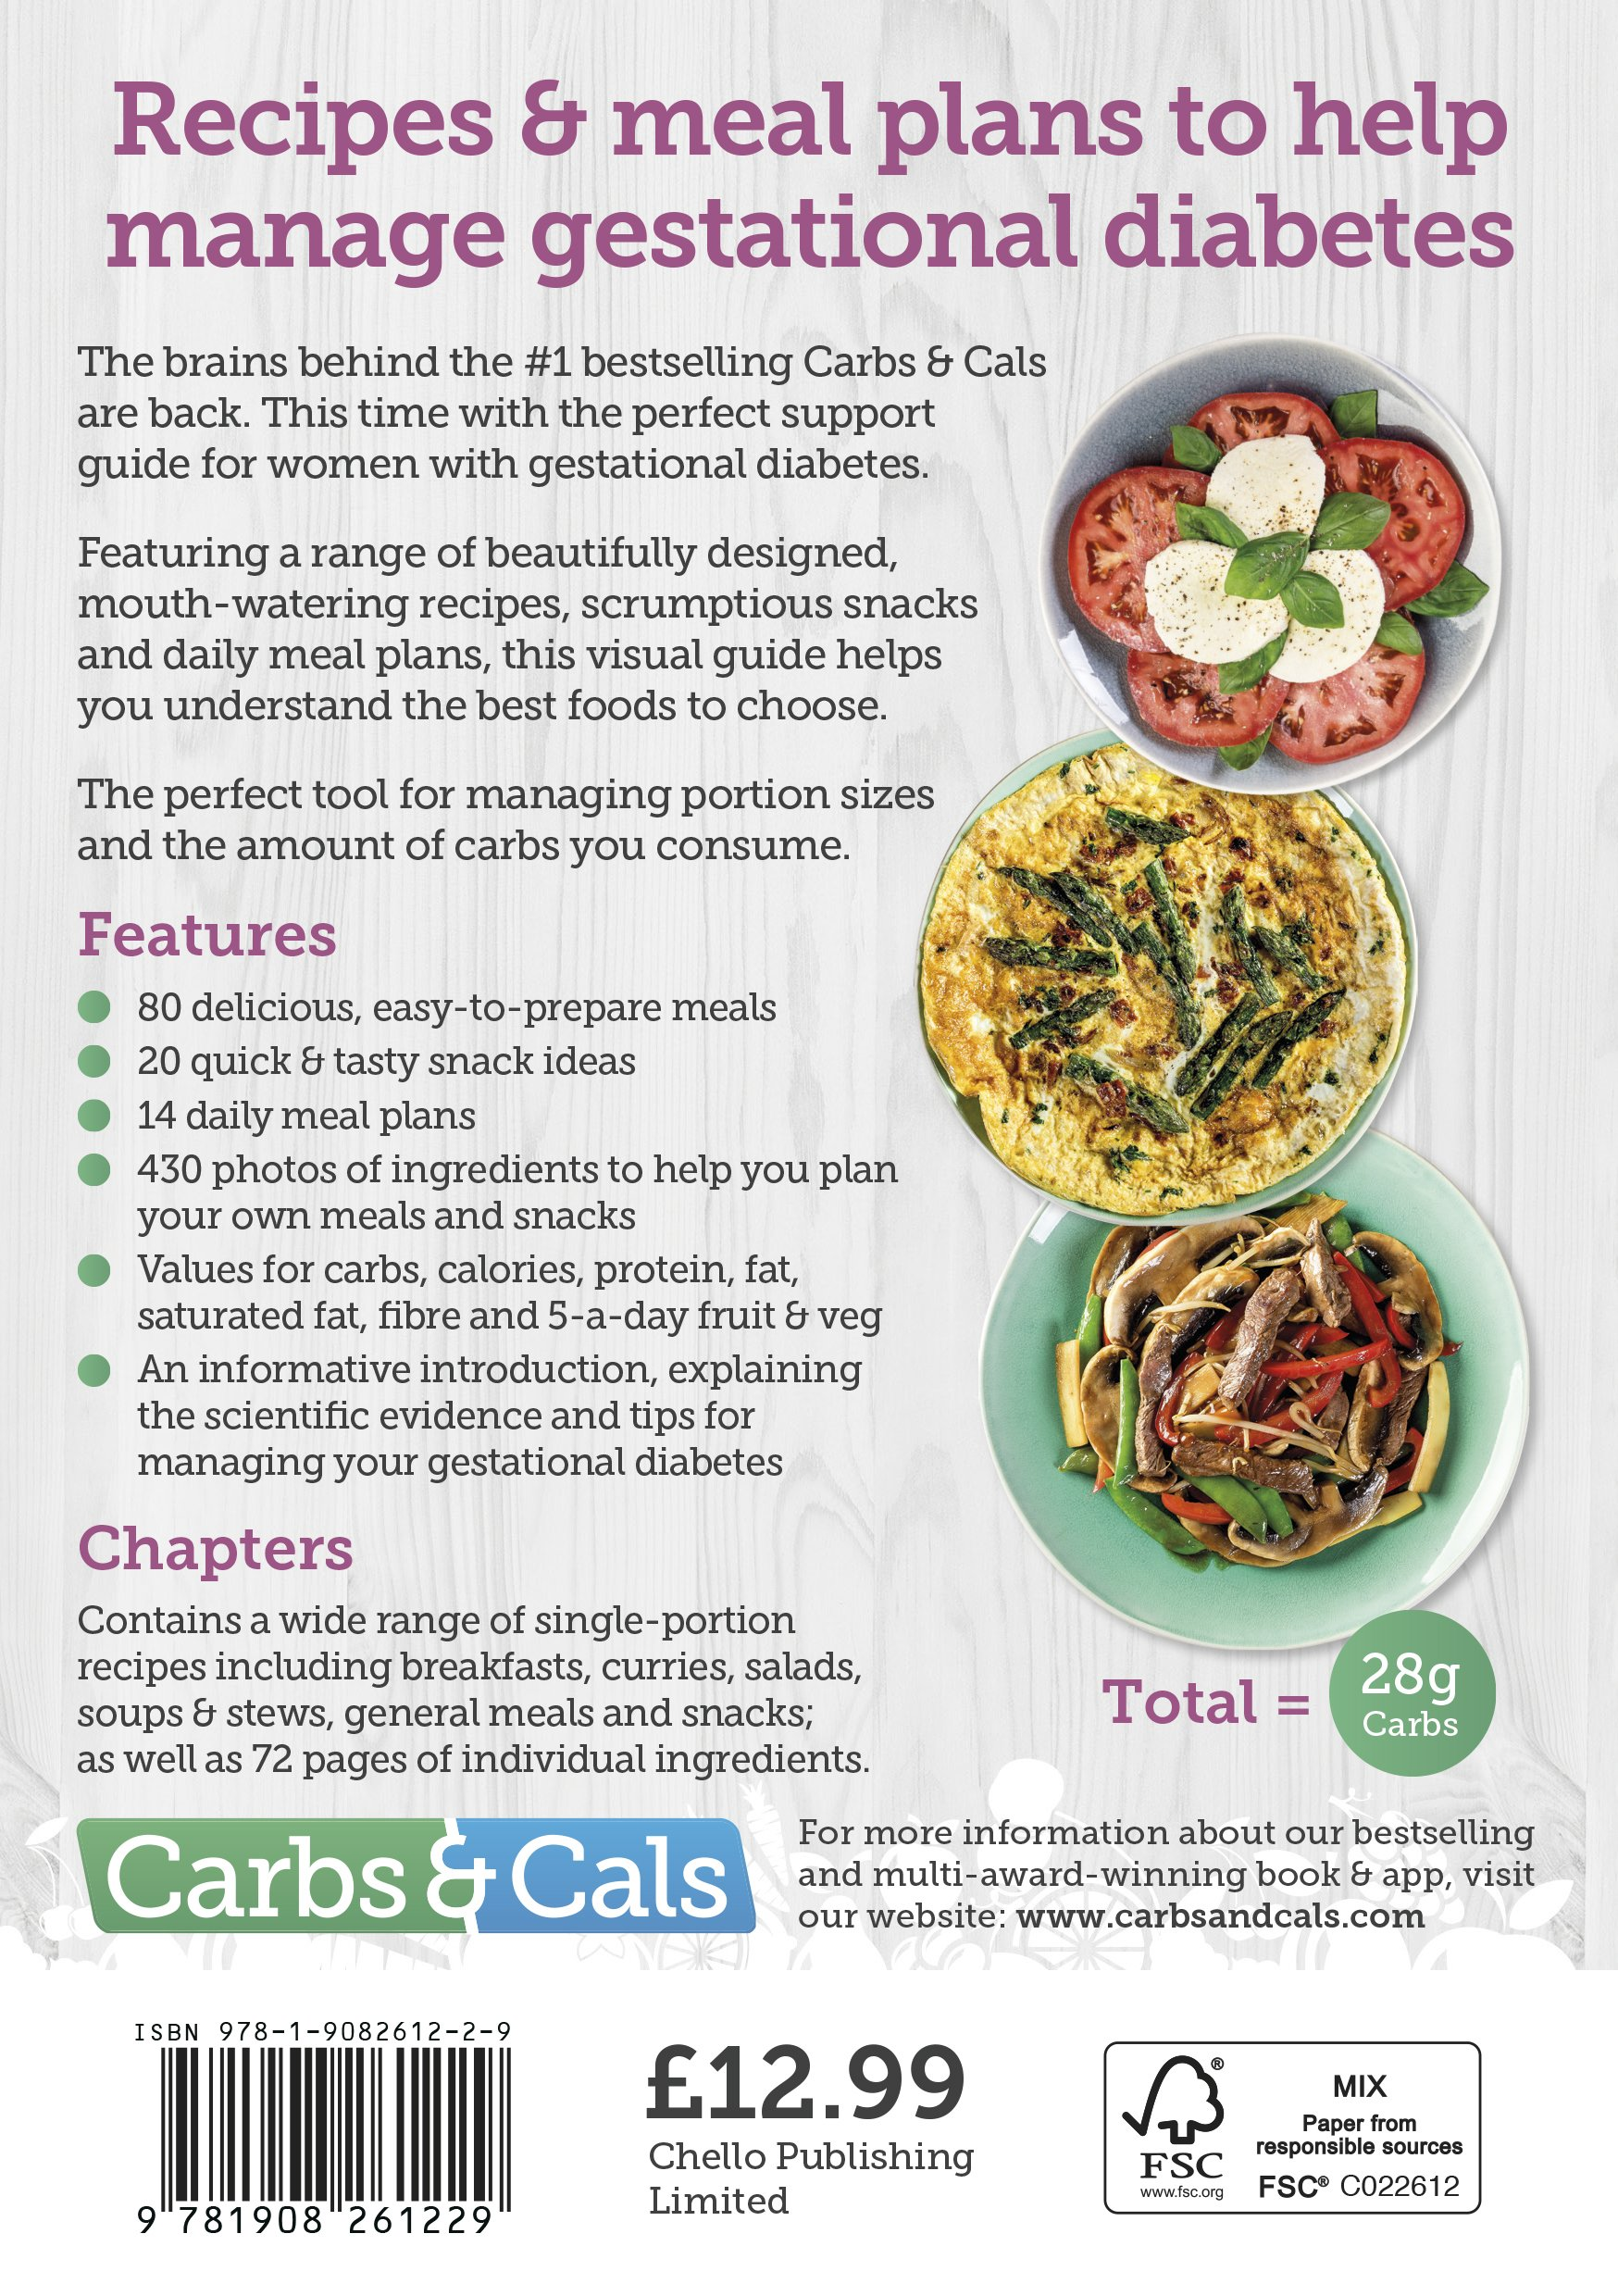 Carbs cals gestational diabetes 100 recipes designed by diabetes carbs cals gestational diabetes 100 recipes designed by diabetes specialist dietitians amazon chris cheyette yello balolia 9781908261229 books forumfinder